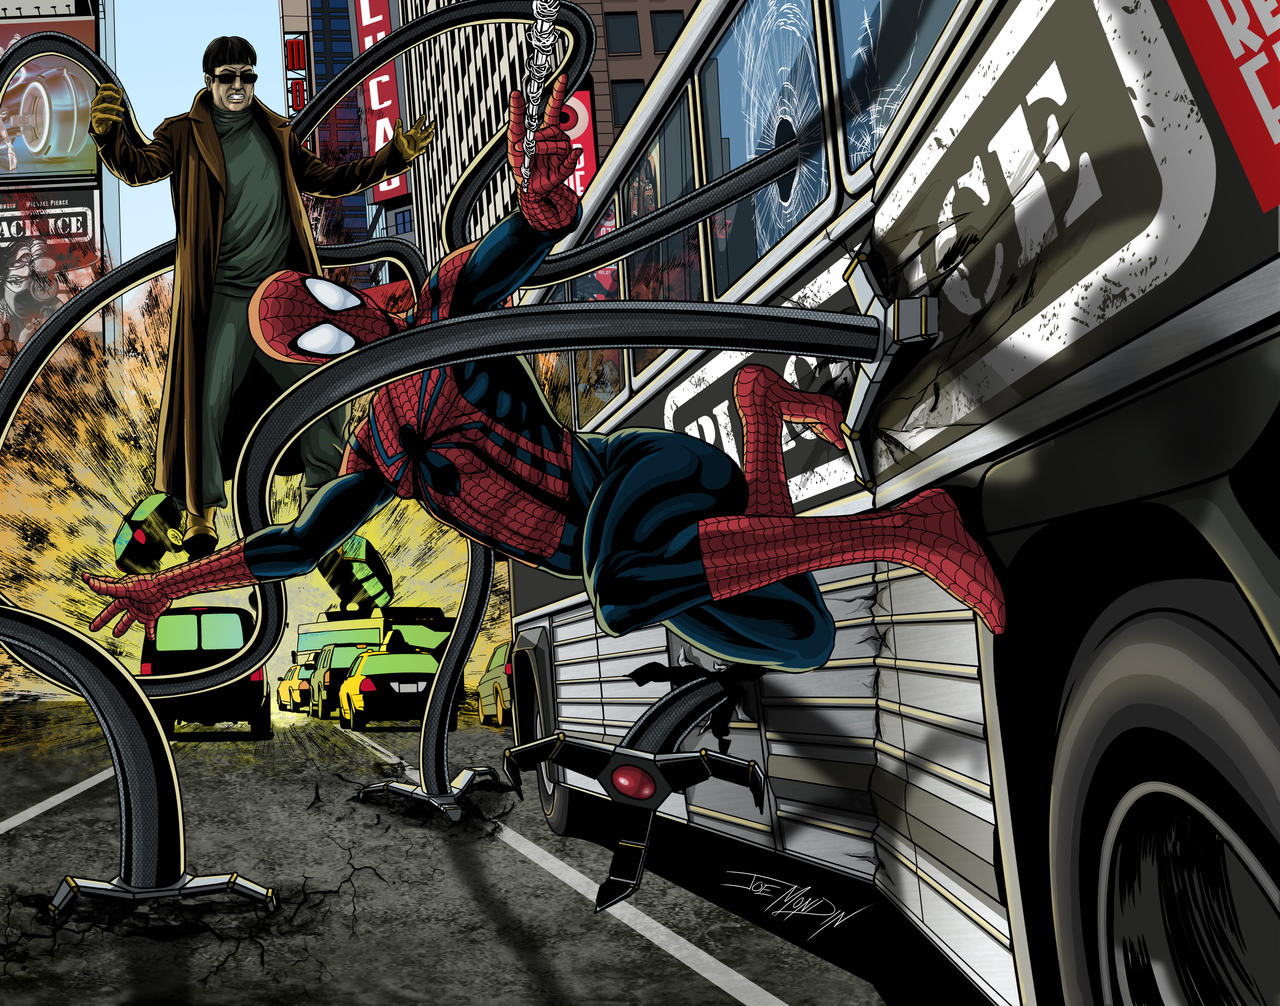 Real Doc Ock Arms? The Line Between Comics and Reality Blurs Again Spiderman_vs_dr__octopus_2_by_joegrafix-d5f9azo